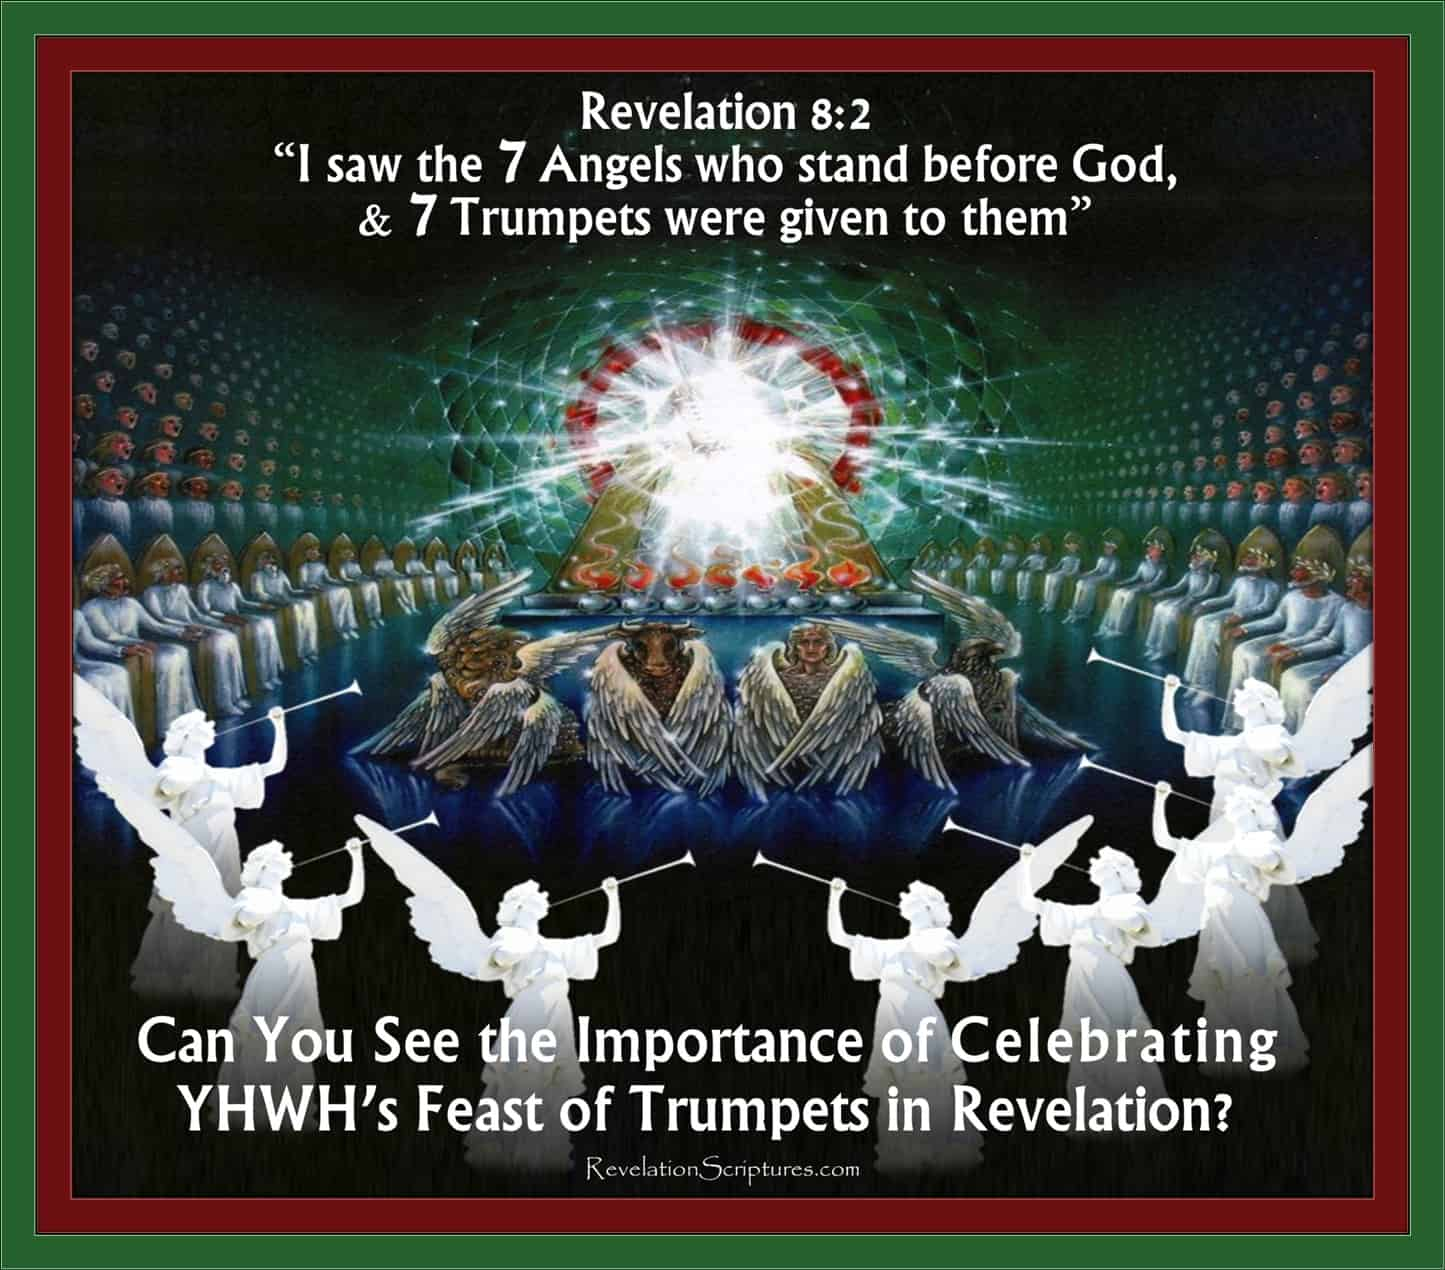 Feast of trumpets,yom teruah,rosh Hashanah,new moon,shofar,Hebrew,Israel,rapture,bible,revelation,Jesus,jubilee,old testament,heaven,day,symbol,jews,church,happy,logo,Israelites,fall,celebration,explained,sabbath,rest,lord,blast,shout,shouting,blowing trumpets,Leviticus 23,Fall Feast,appointed,time,moed,alarm,messianic,day of shouting,7 Trumpets,7 Trumpets in Revelation,7 Trumpets of Revelation,Seven Trumpets,Seven Trumpets Revelation,7 Angels given 7 Trumpets,7 Angels blow 7 Trumpets,Natzarim,2nd Coming,Second Coming,Numbers 29,Fulfillment in Revelation,Fulfillment,Feast of Trumpets Revelation,Yom teruah Revelation,Future Fulfillment in Revelation,Book of Revelation,Apocalypse,memorial,holy convecation,Numbers 21.9,Num 29,Lev 23,Leviticus 23,Blast of Trumpets,first day,seventh month,new moon,cresent moon,lunar calendar,observe,Biblical New Moon